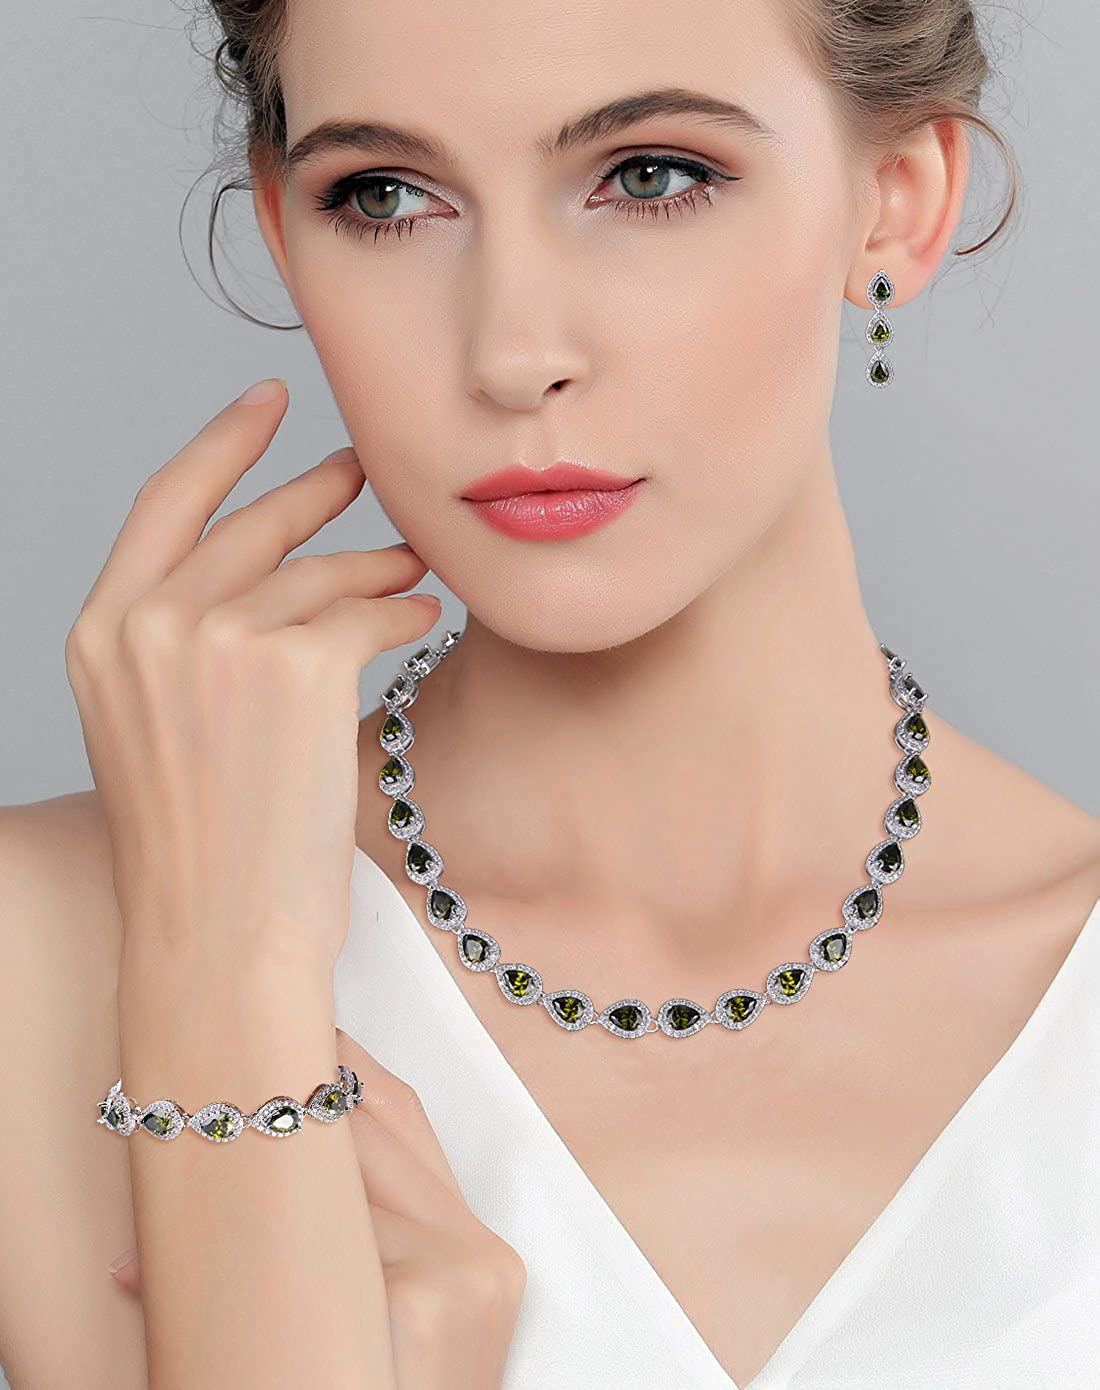 Chunky silver tone with colorless crystals necklace and matching earrings womens jewelry set